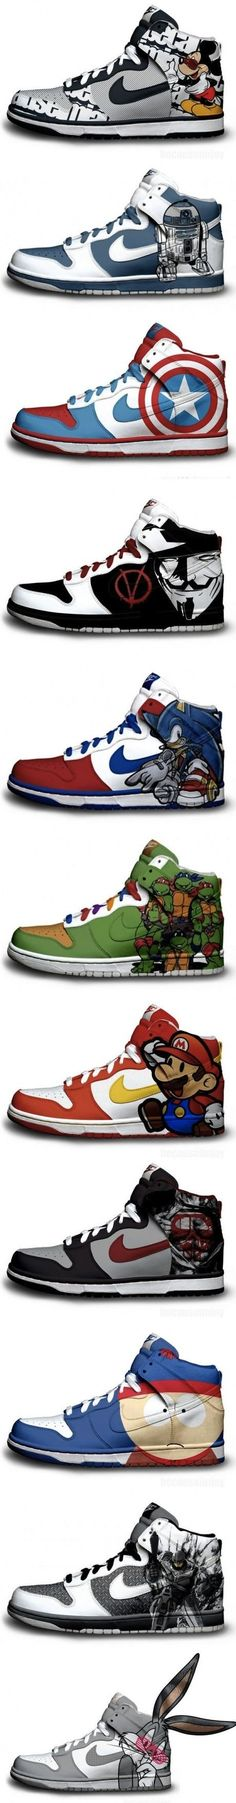 Nike Dunks Gone Awesome